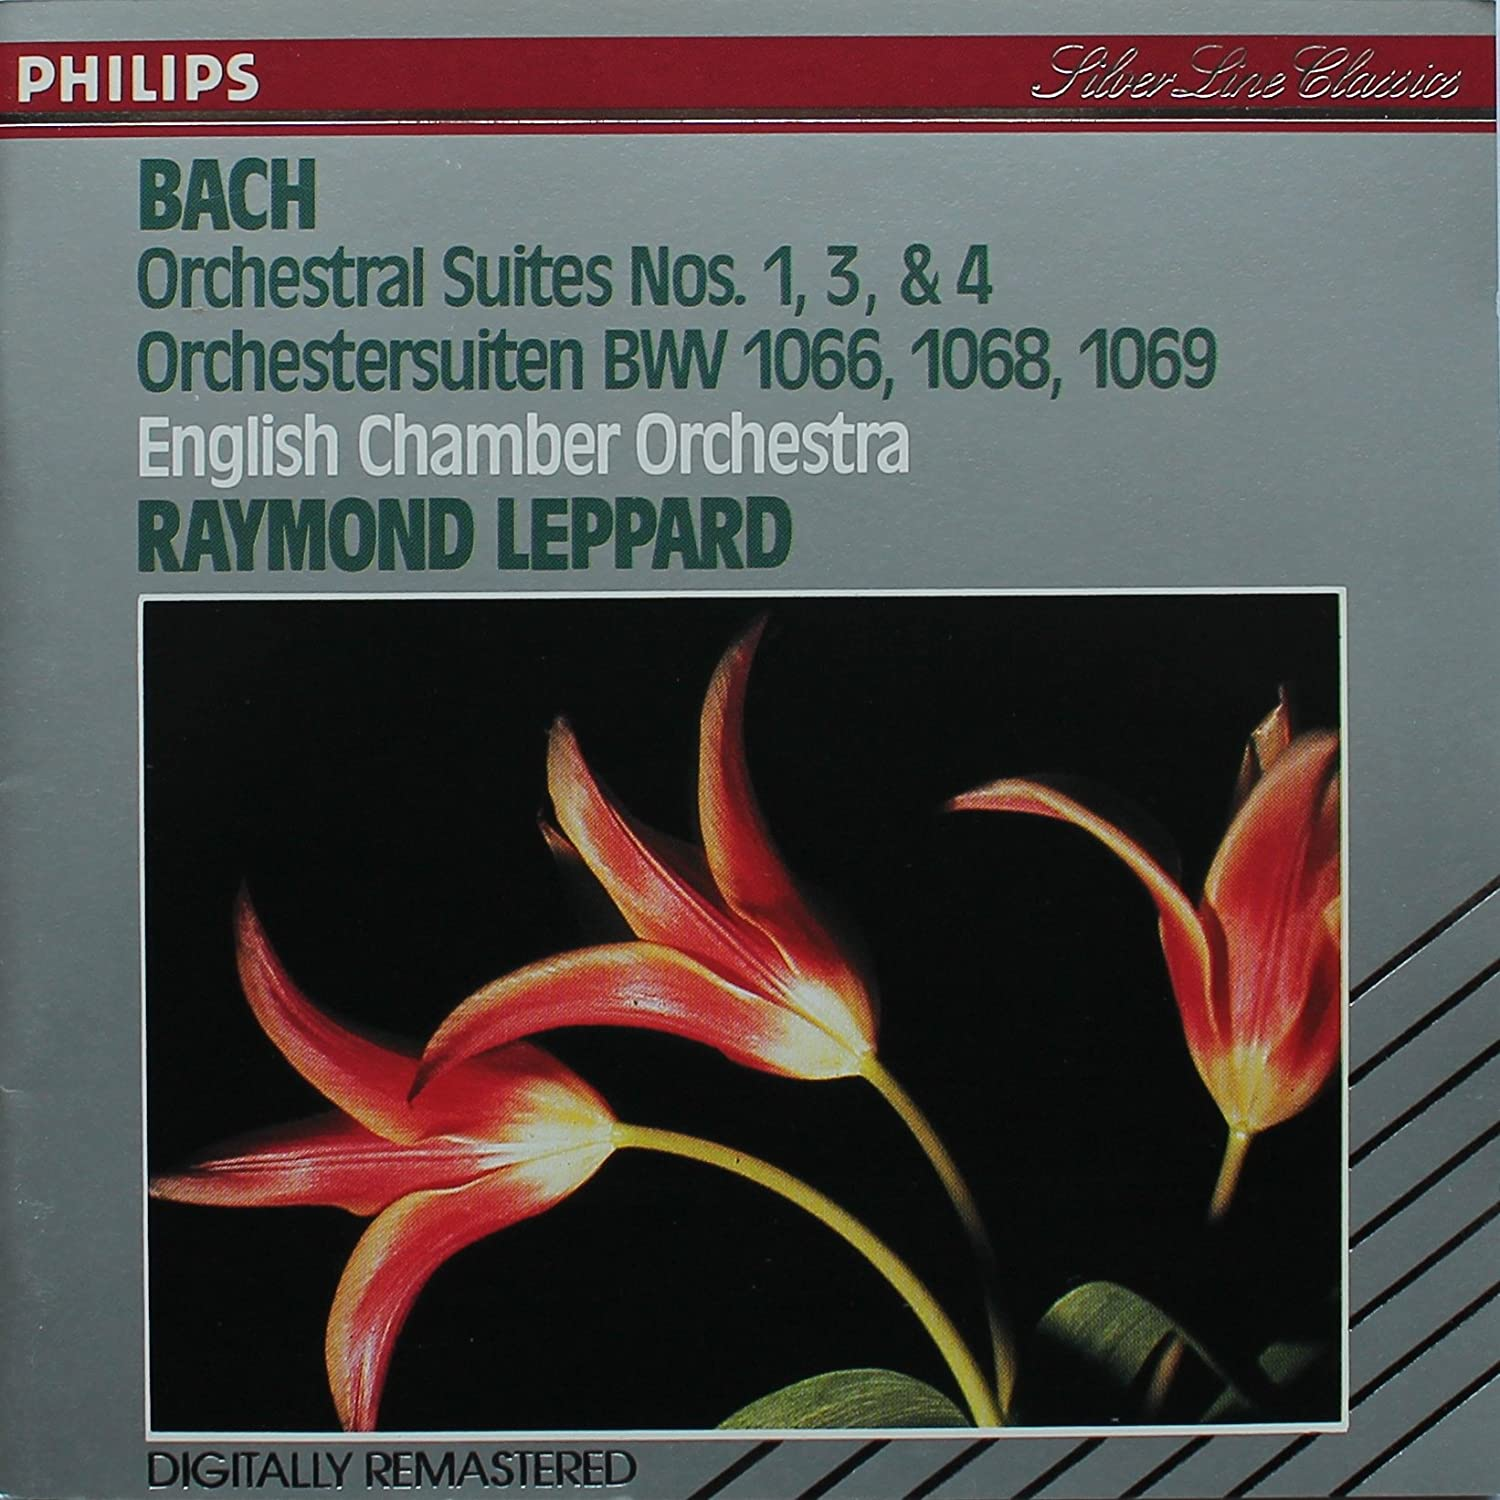 Bach-Leppard -Suite Orchestrale: English Chamber Orchestra, Raymond Leppard: Amazon.es: Música